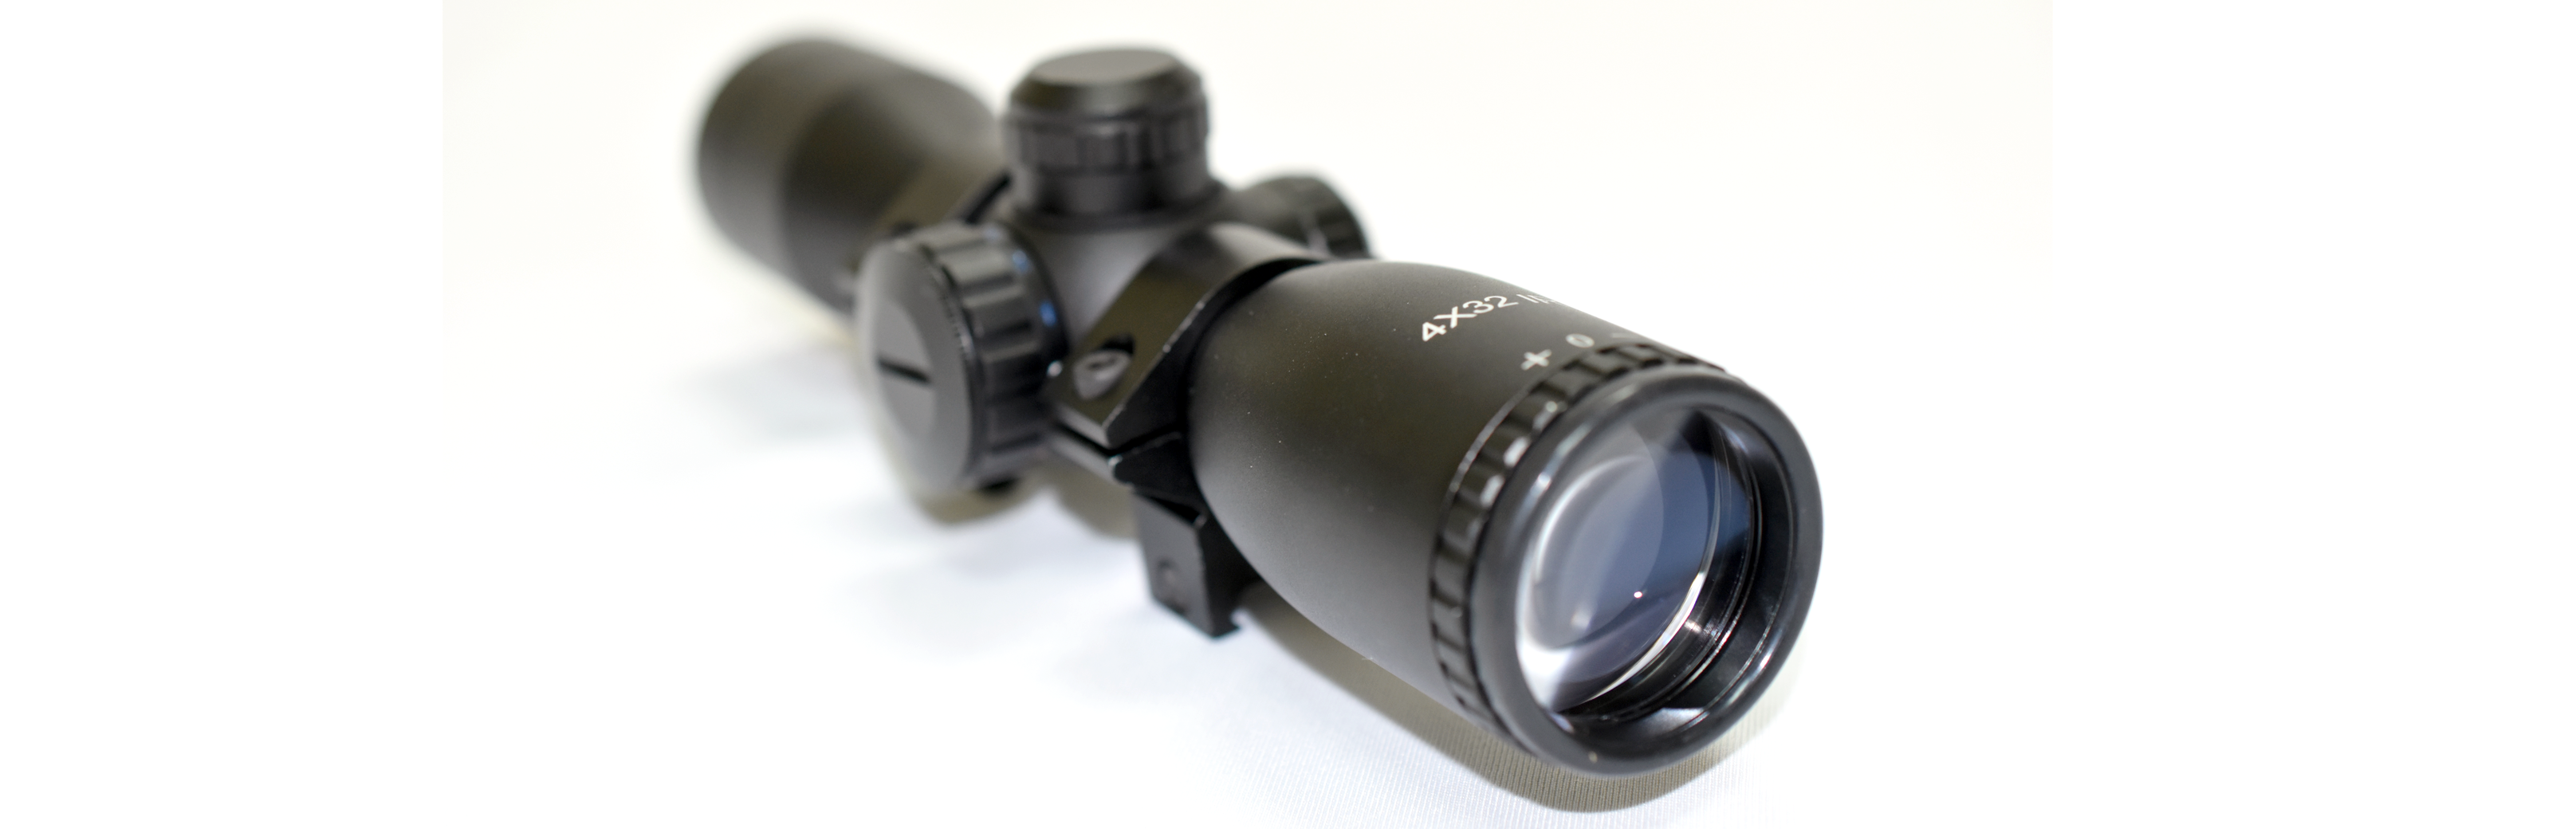 /archive/product/item/images/4x32Multi-RangeWireReticleScope/4x32-Multi-Range-Wire-Reticle-Scope-1.png